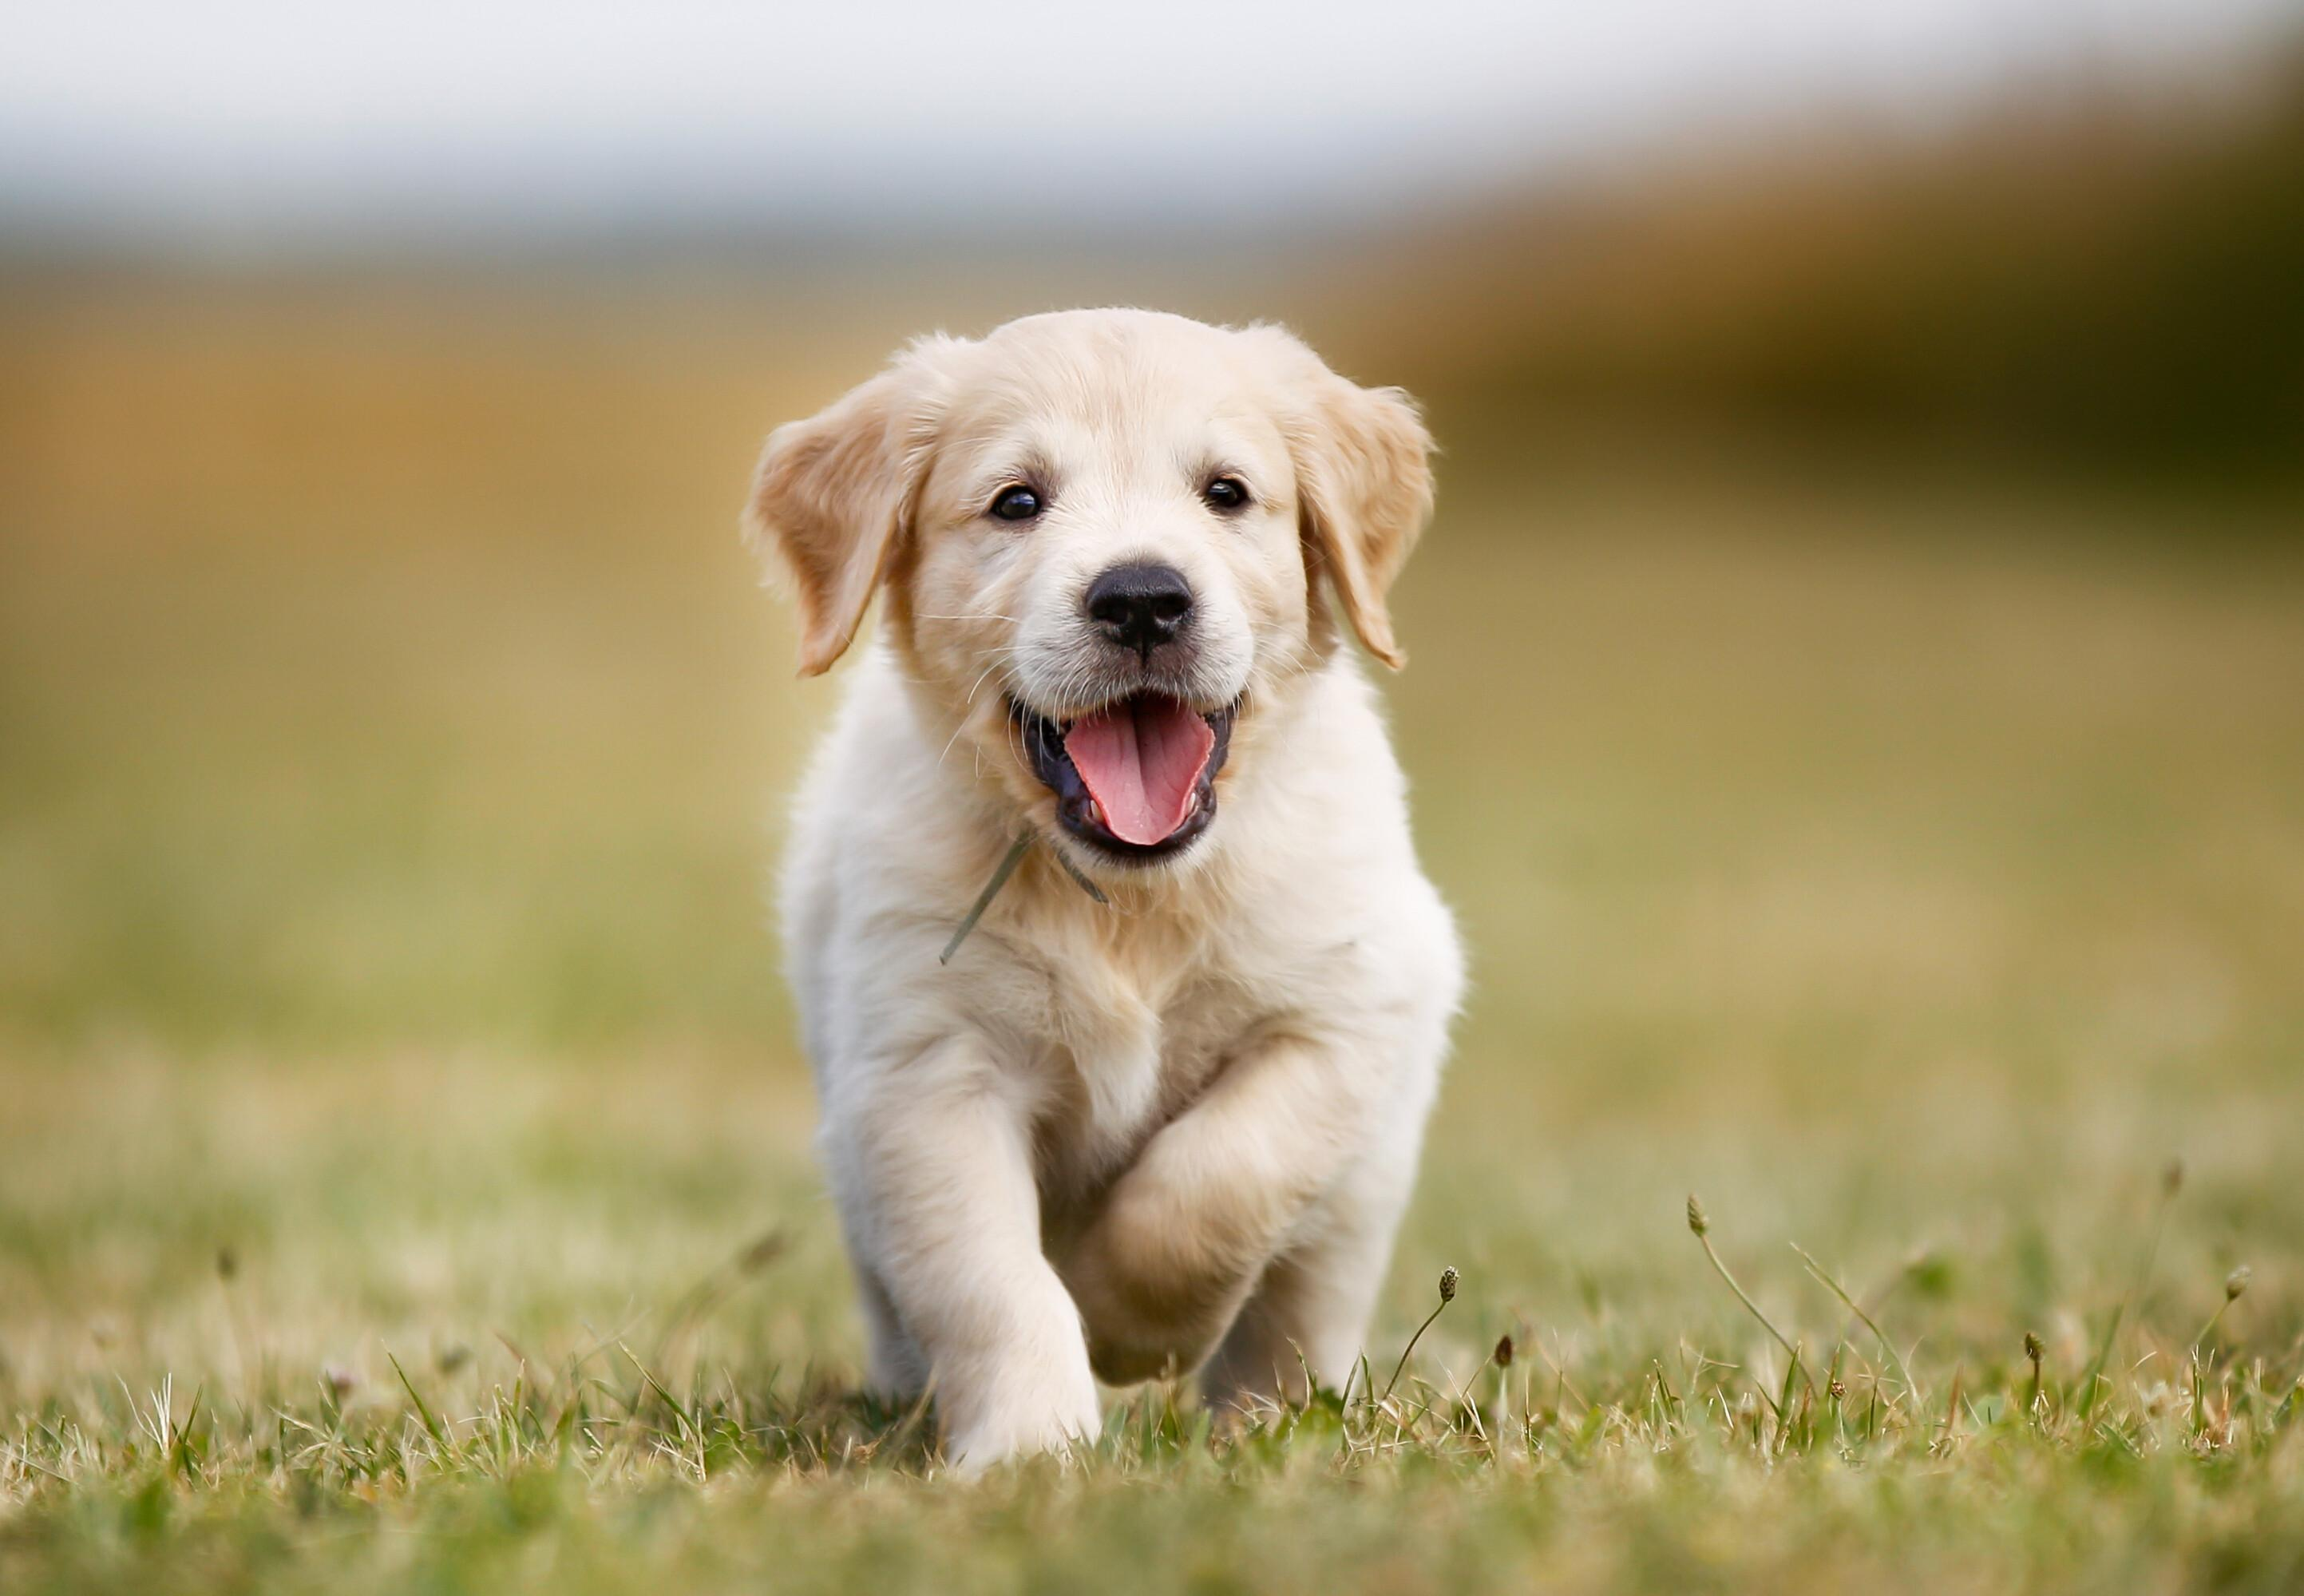 Golden retriever puppy outdoors on a sunny day